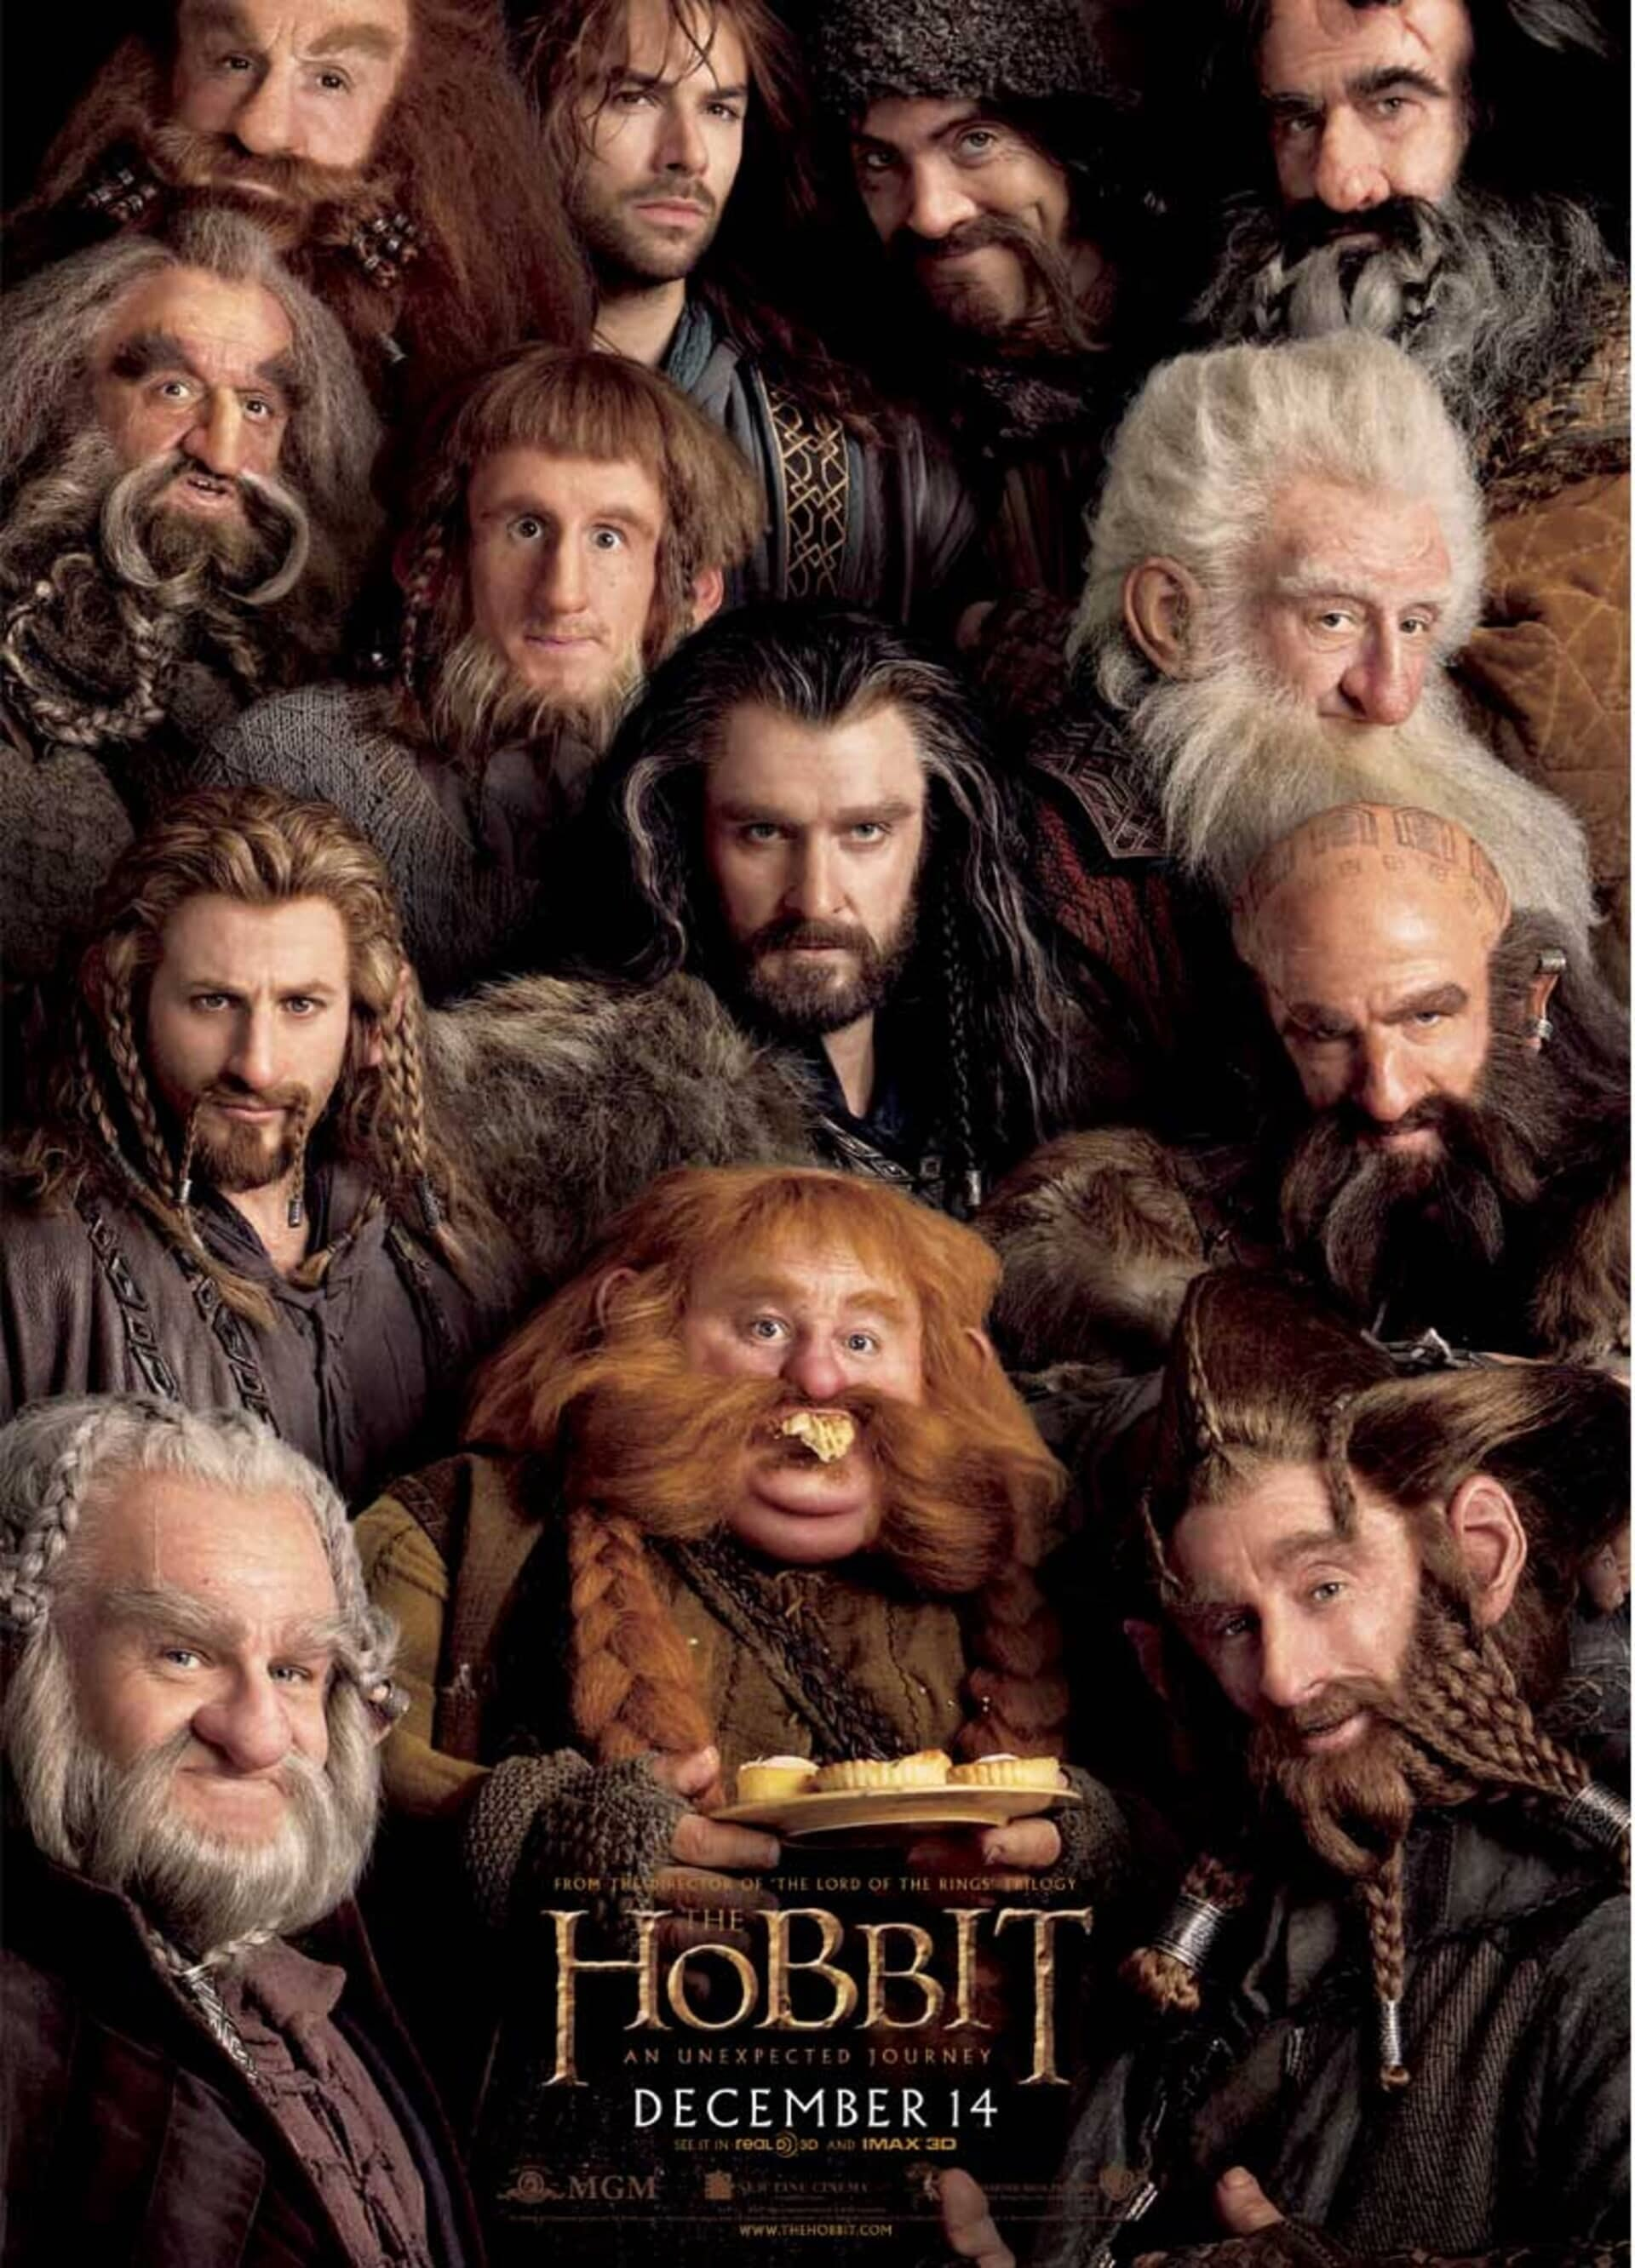 The Hobbit: An Unexpected Journey - Poster 2